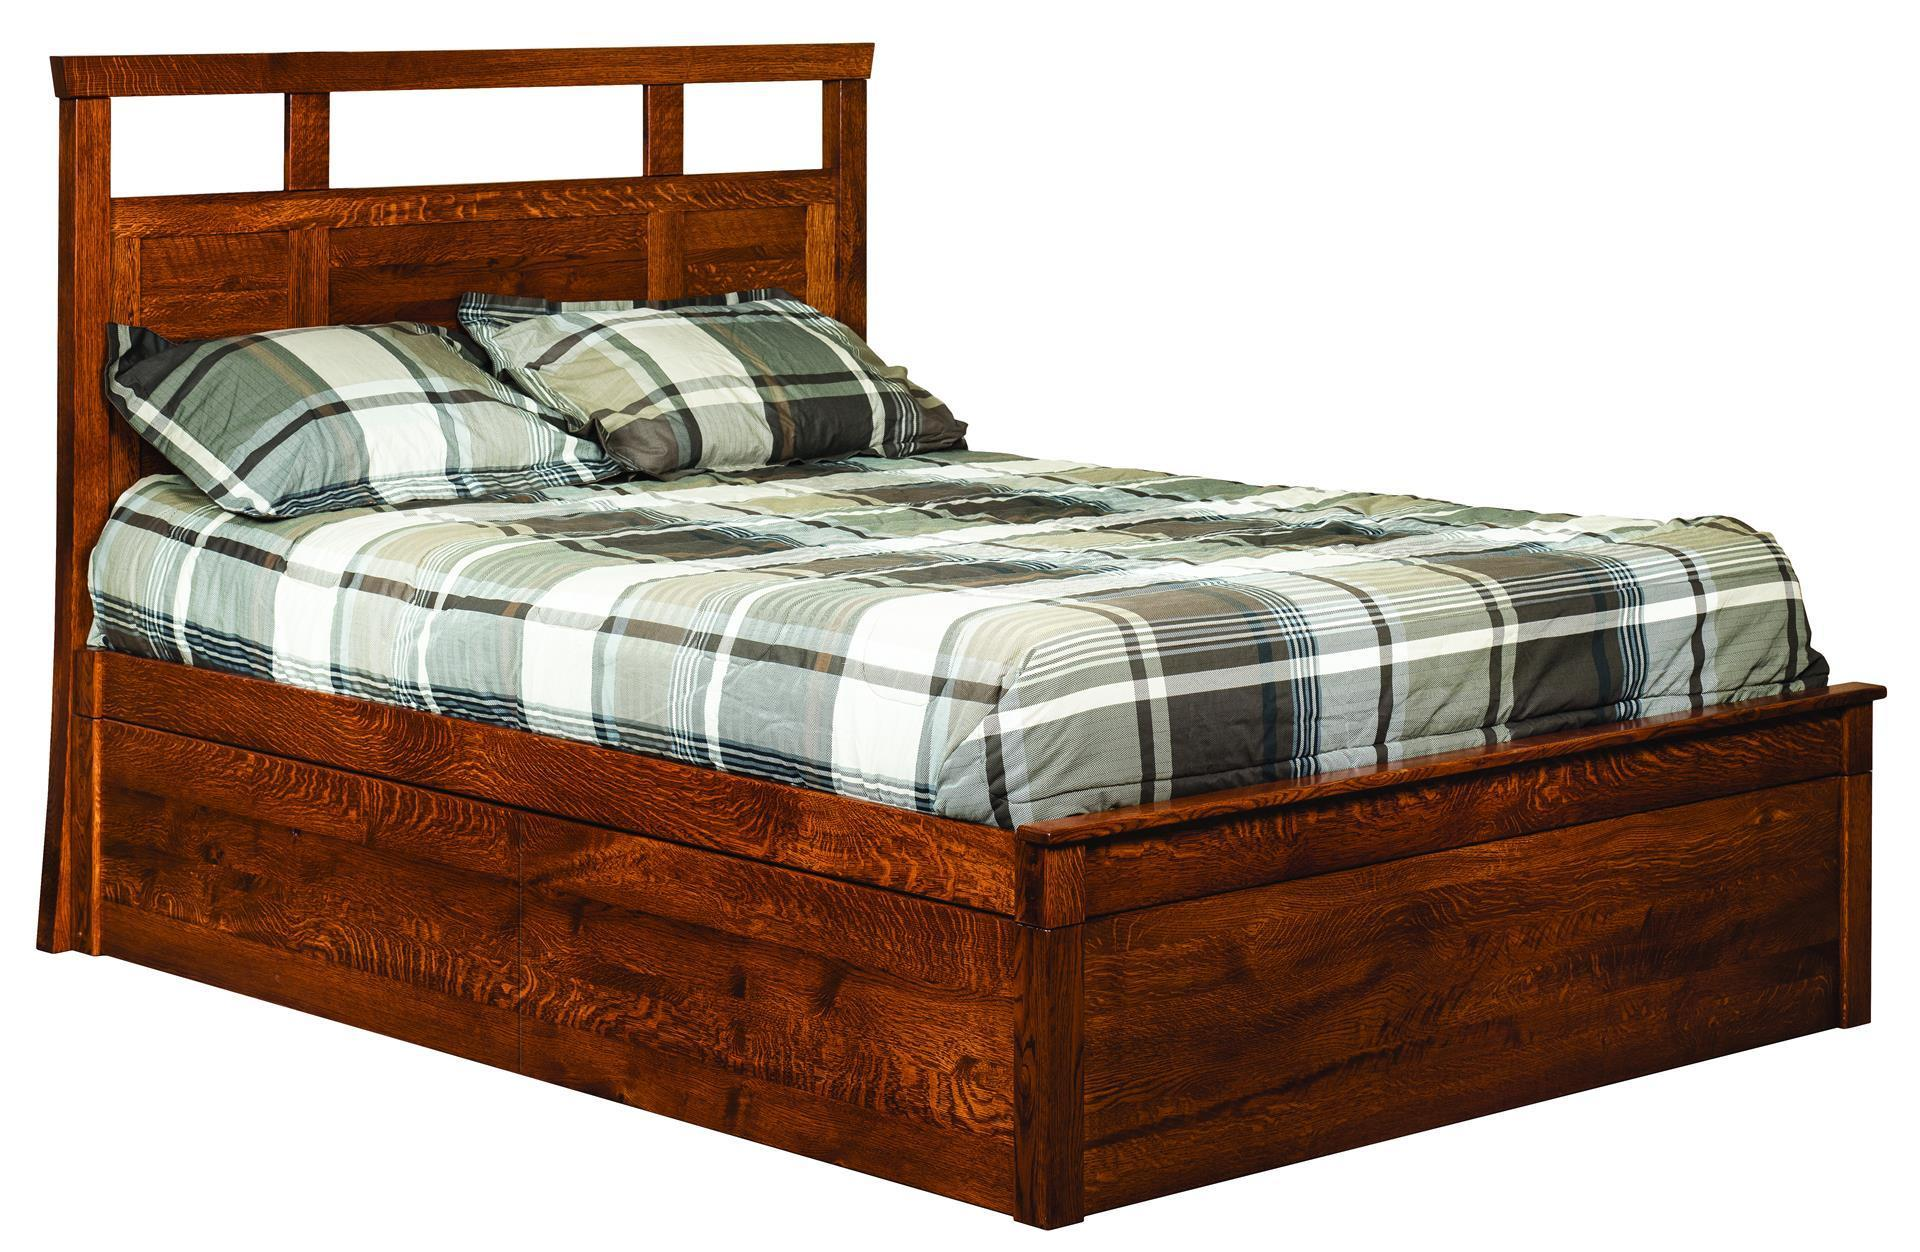 Stone creek platform lift storage bed from dutchcrafters amish - Lift up storage bed ...